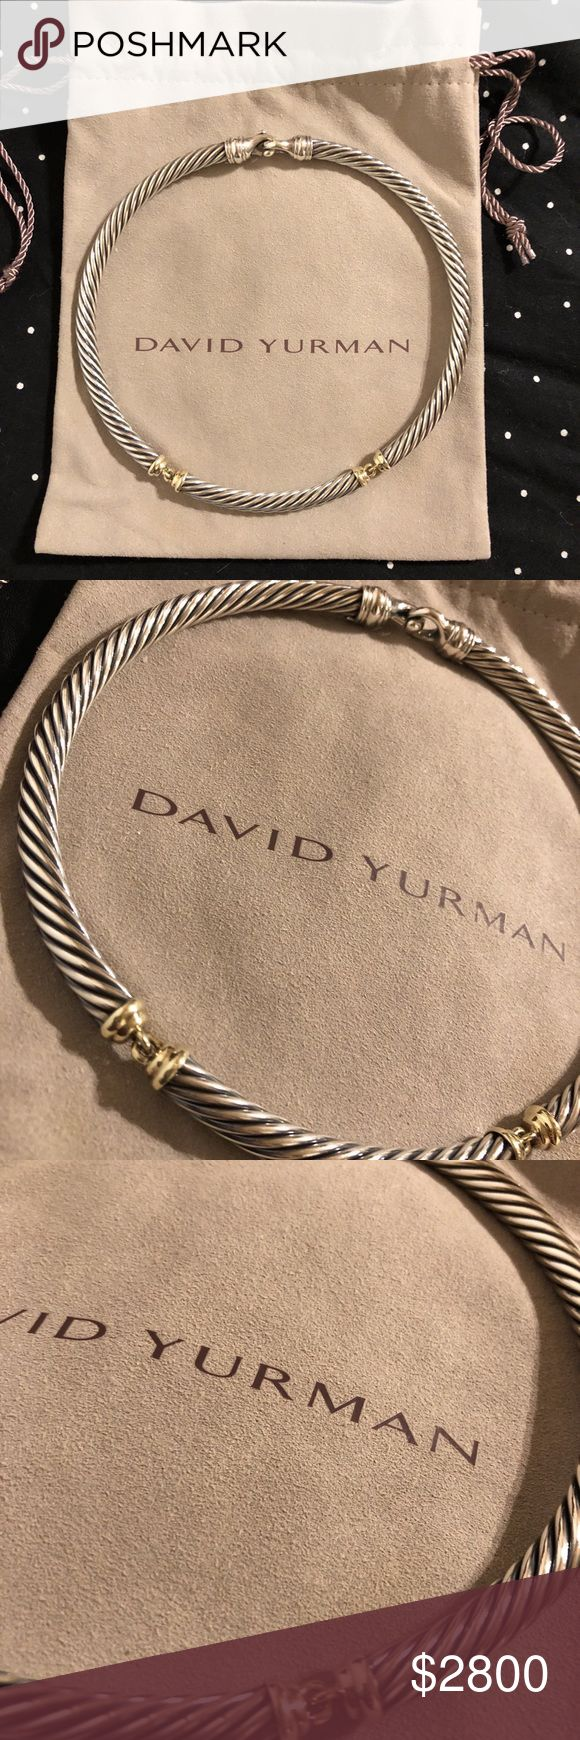 "DAVID YURMAN Sterling Silver & 14K Gold Necklace This will never be marked any lower.   If you know David Yurman, you know you are getting a great deal   Serious Buyers Only  This is for the spoiled lady that loves to dress for success!   Solid Sterling Silver Cable with 14K Gold Connecting Hinge Accents.  It is stamped, 925, and 585 for on the back clasp.  Lobster Clasp in back. Choker weighs about 101 grams Thickness of the Link: 7mm  Length approximately 16""   Width when closed: 5 inches…"